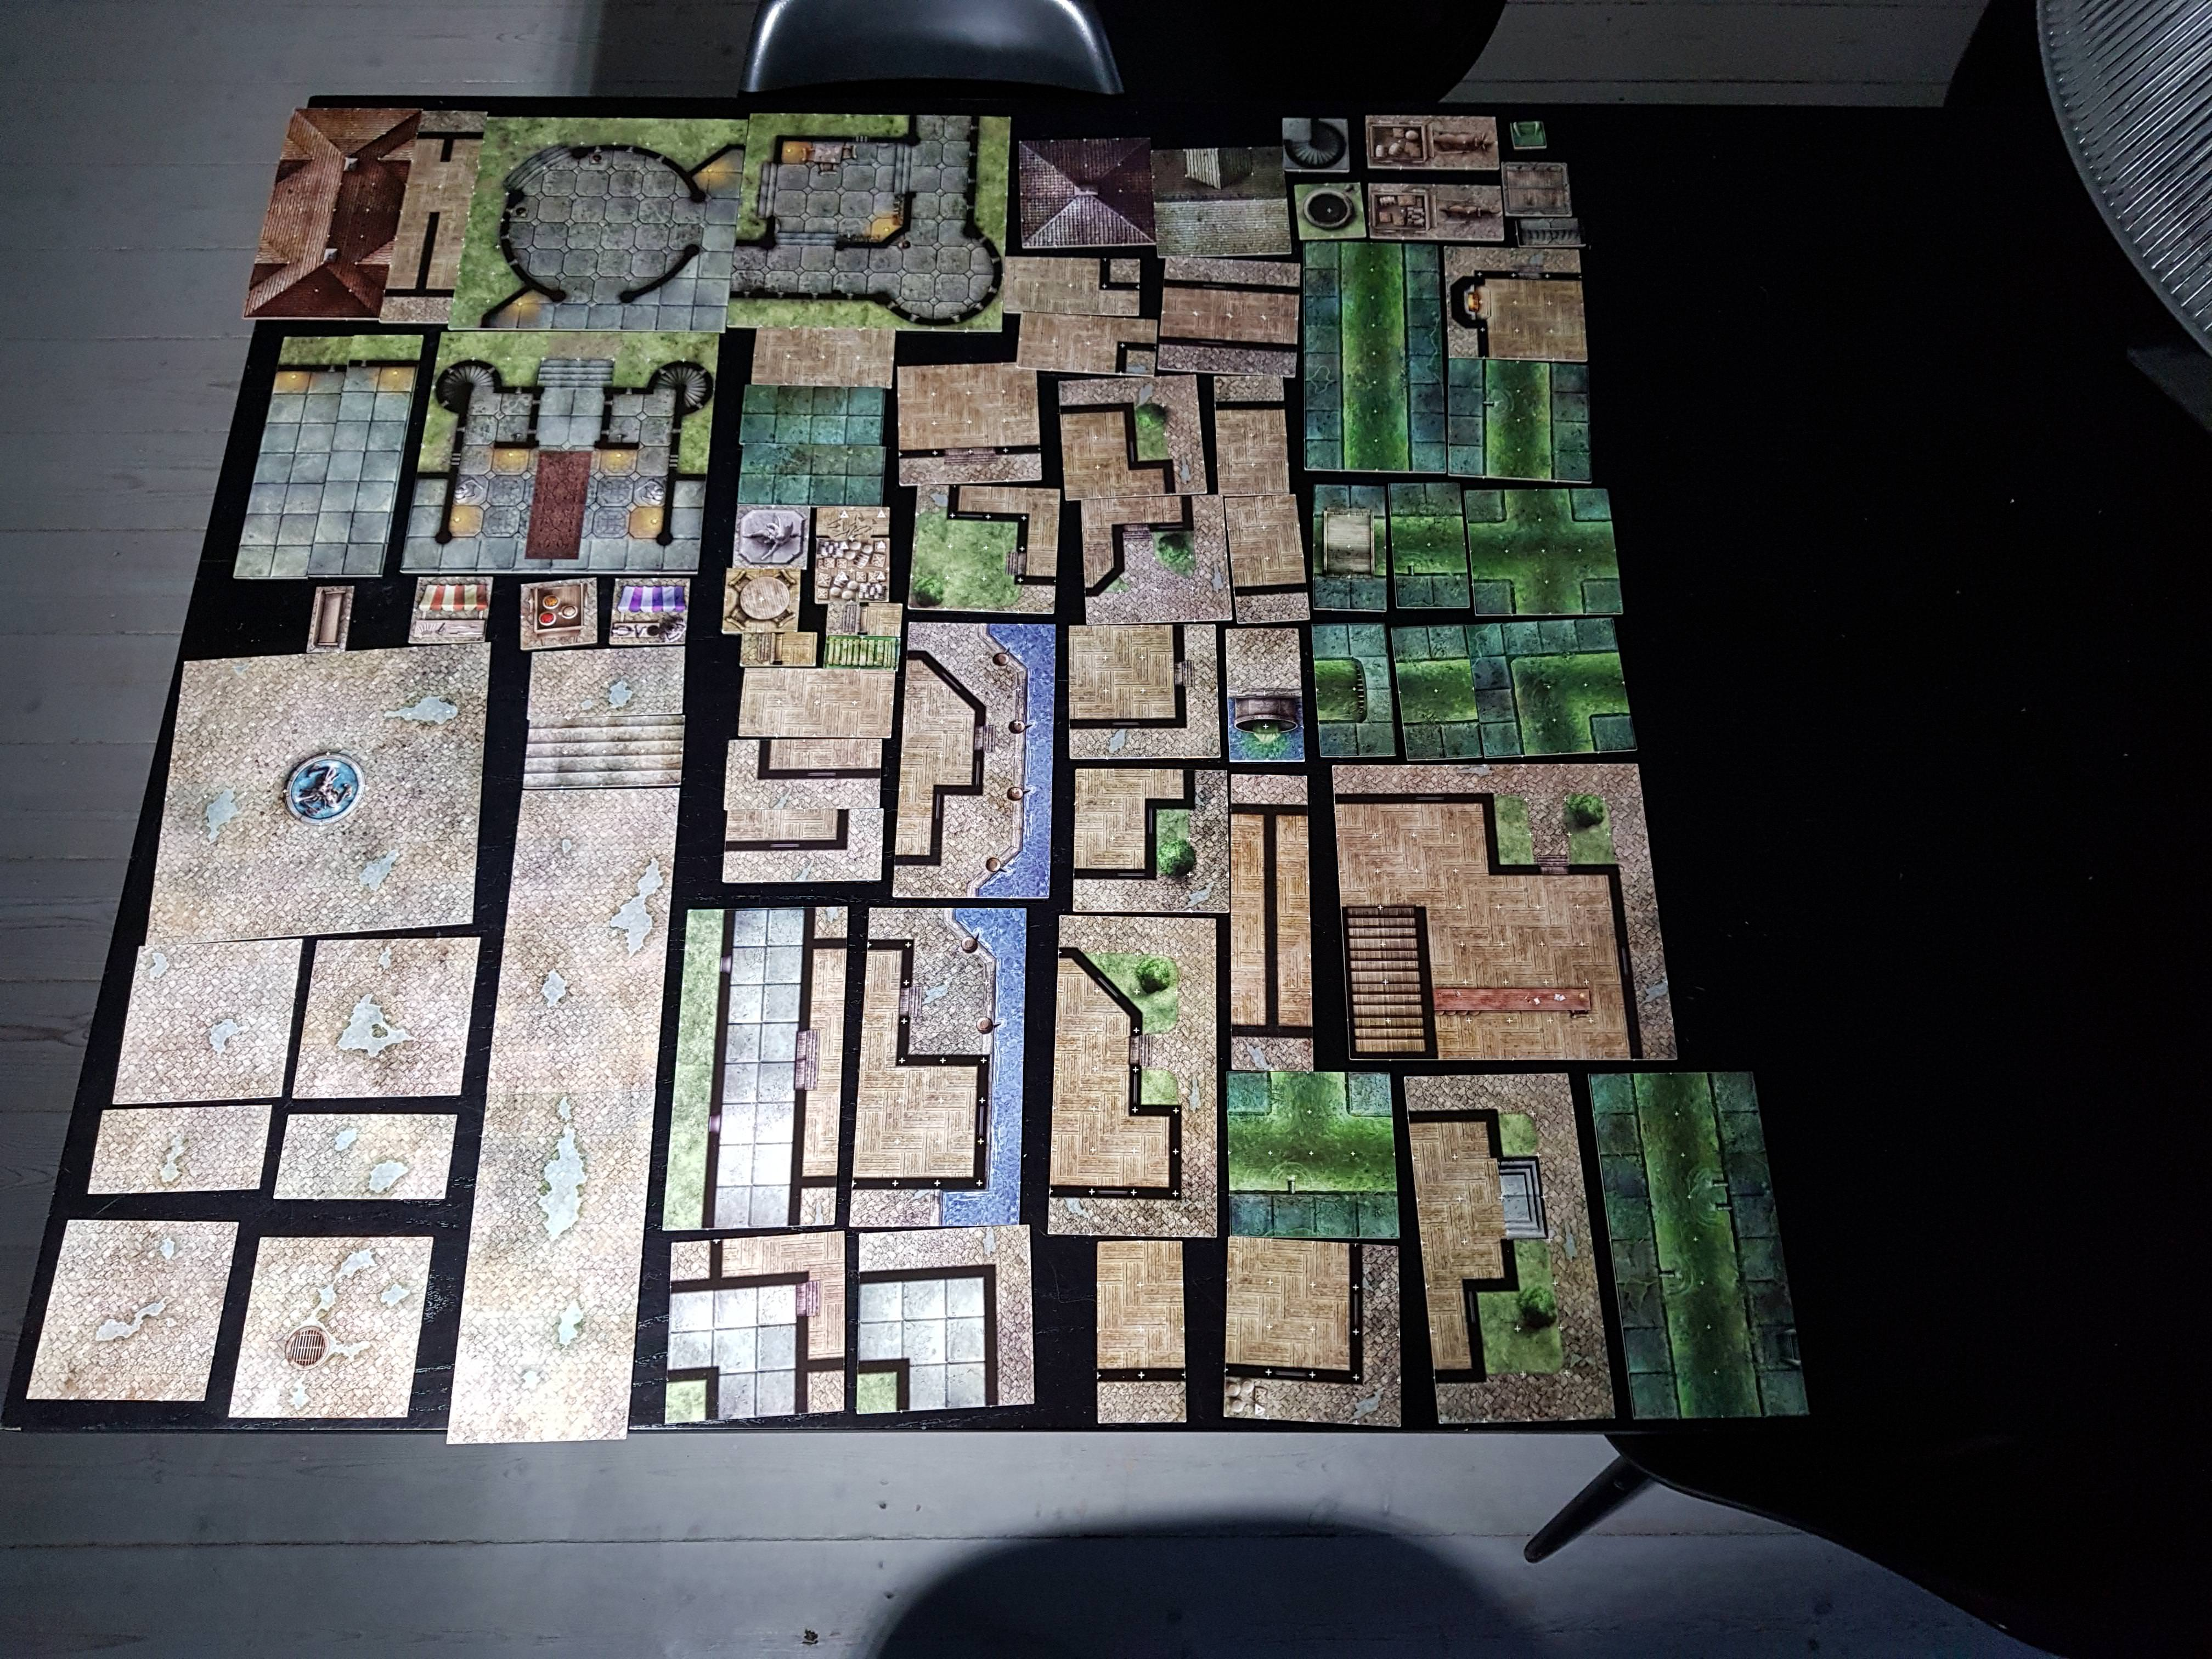 D&D Dungeon Tiles Reincarnated | Checkpoint - Club si